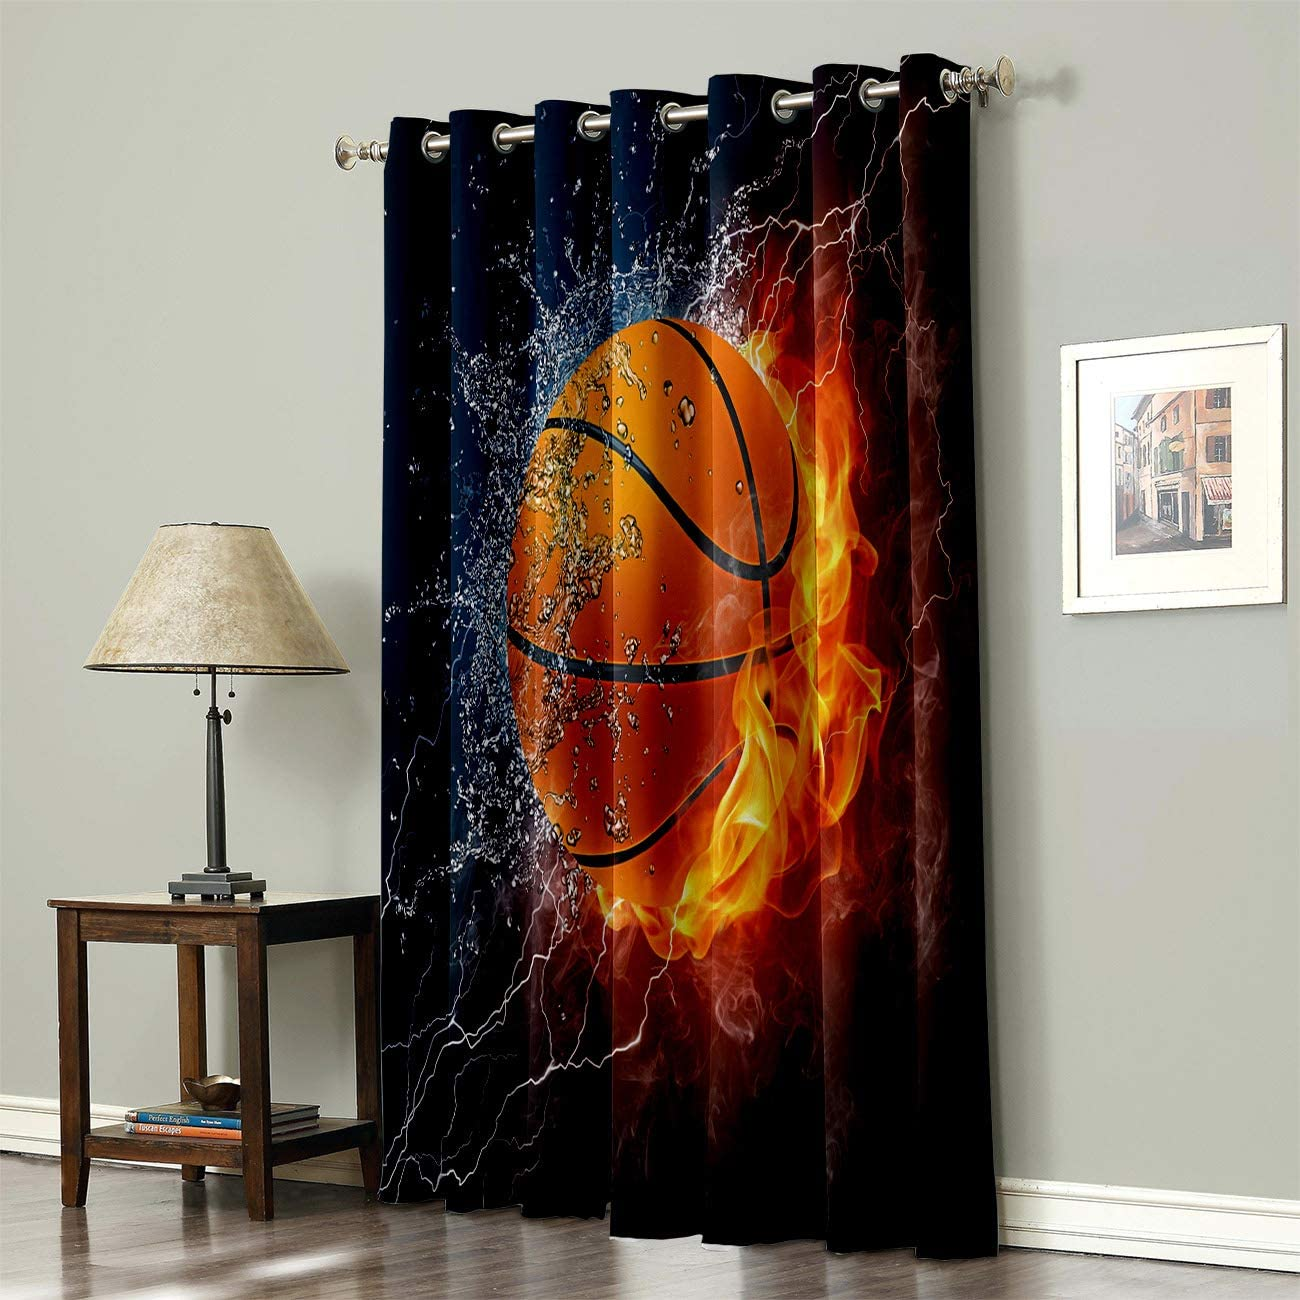 52 x 24 Prime Leader Curtains for Living Room with Grommet Home Decor Basketball on Fire and Water Flame Splashing Lightning Darkening Thermal Insulated Window Treatment Curtains